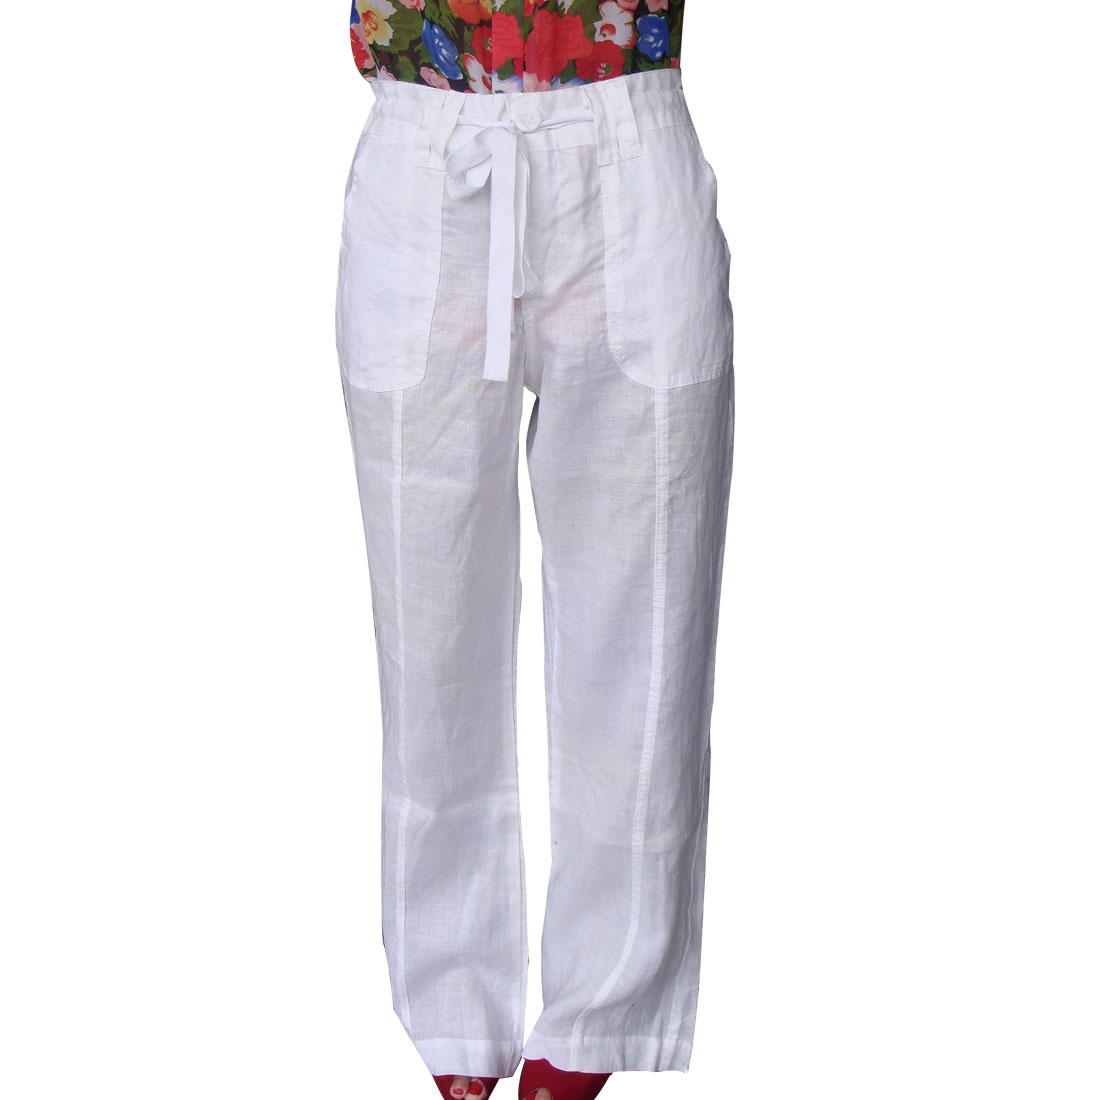 Women Slanting Pockets Button Closure Solid White Casual Pants XL